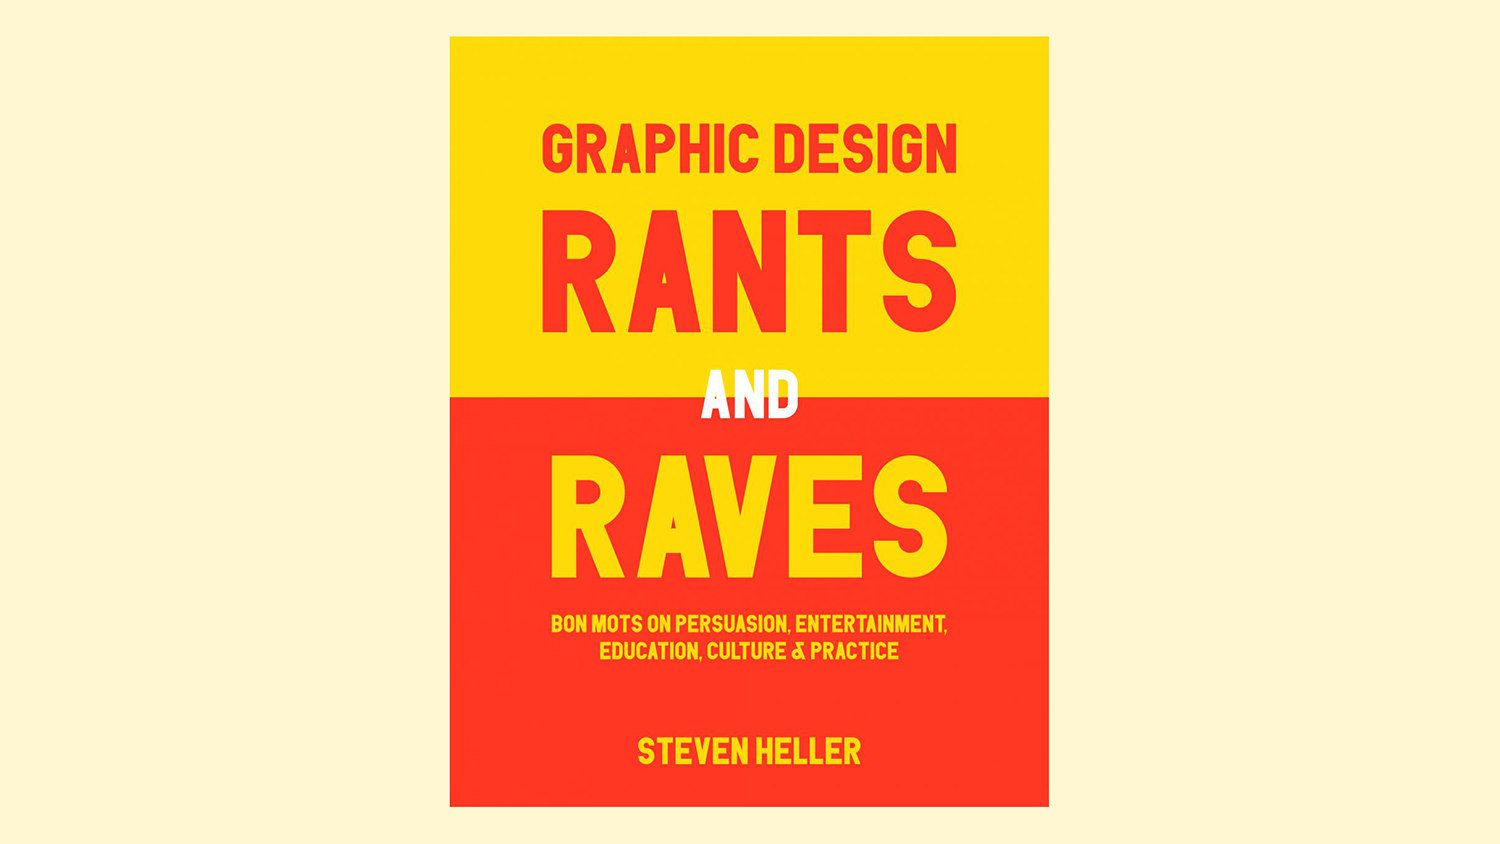 the best new graphic design tools for graficstudio steven heller s latest essay anthology covers the spectrum of graphic design and related art and culture